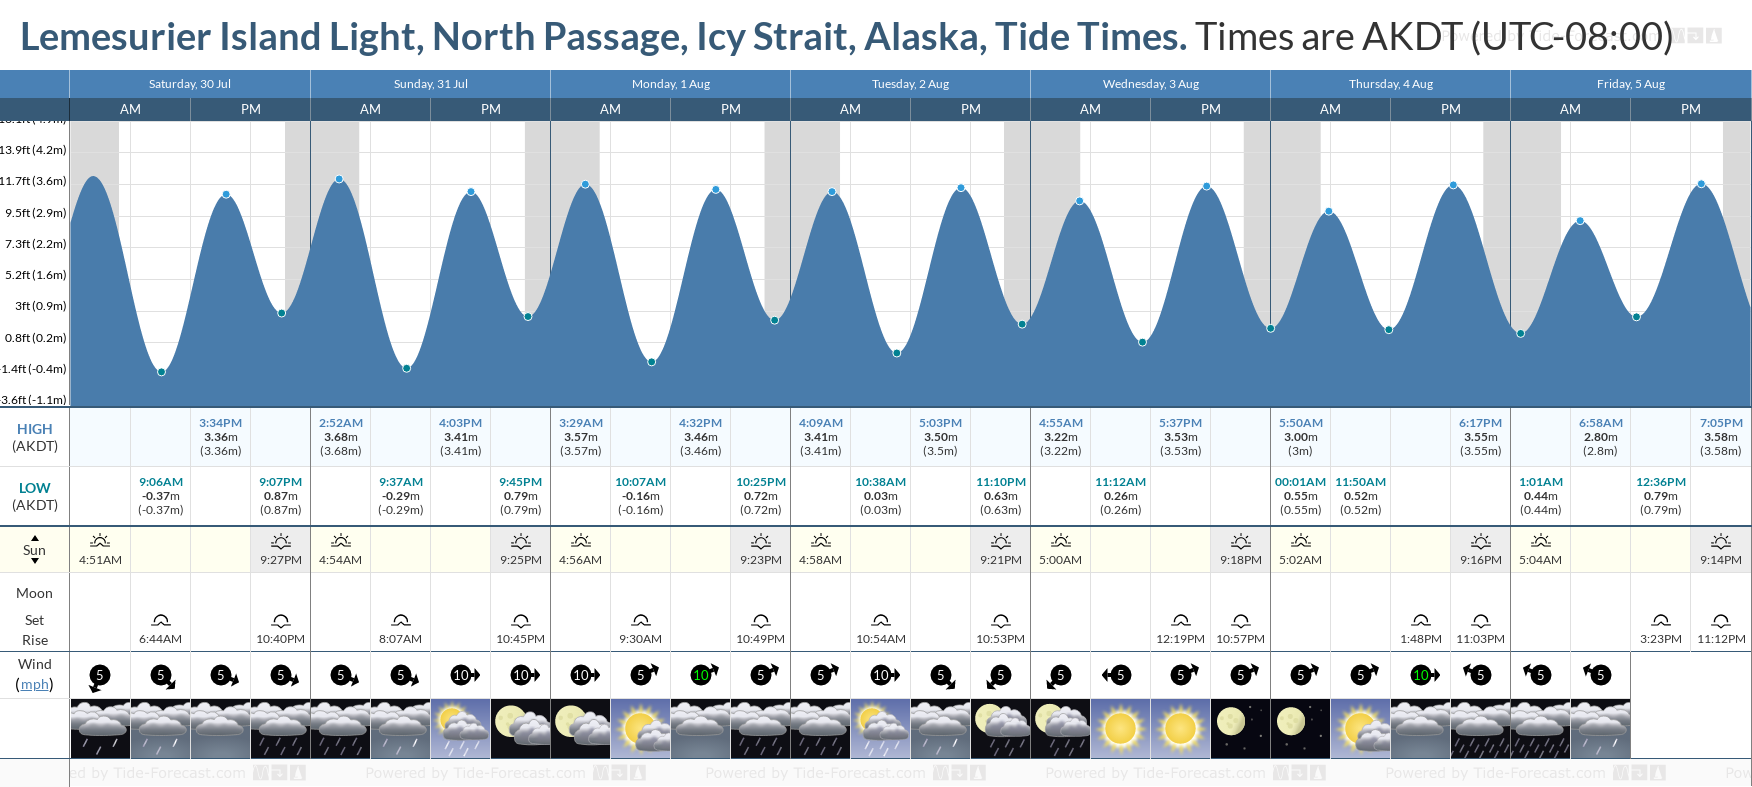 Lemesurier Island Light, North Passage, Icy Strait, Alaska Tide Chart including high and low tide tide times for the next 7 days